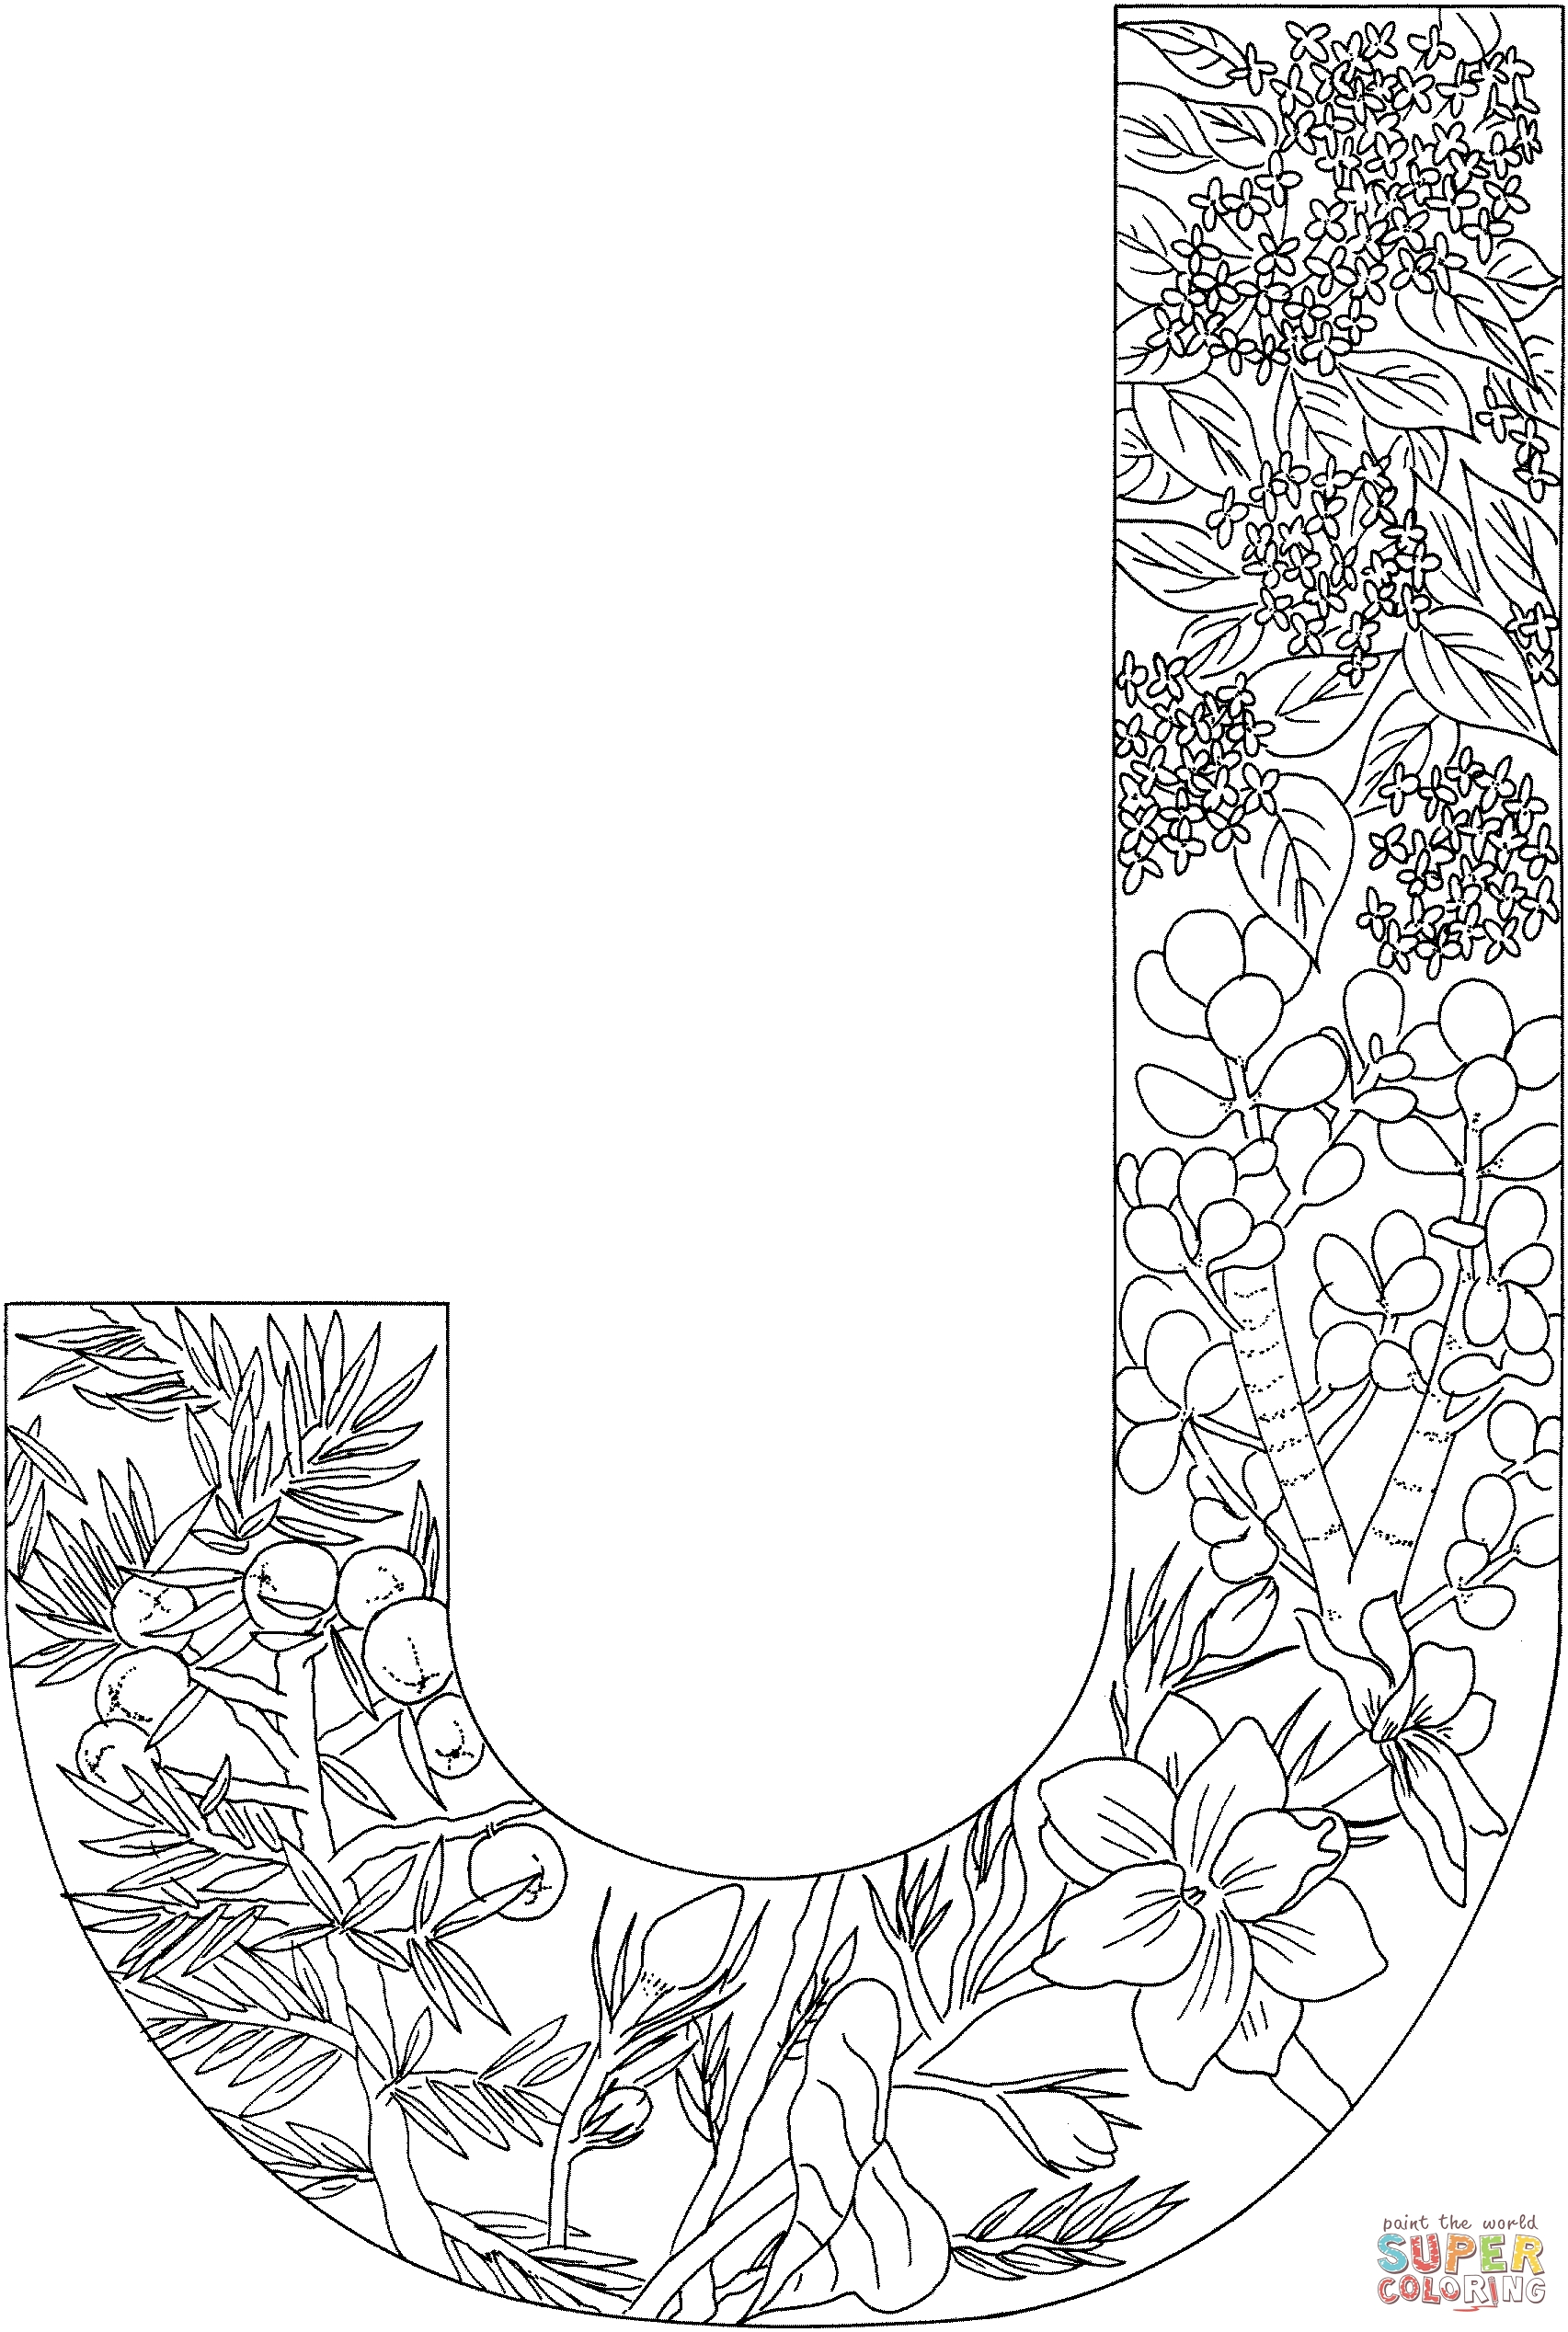 j coloring pages - letter j with plants